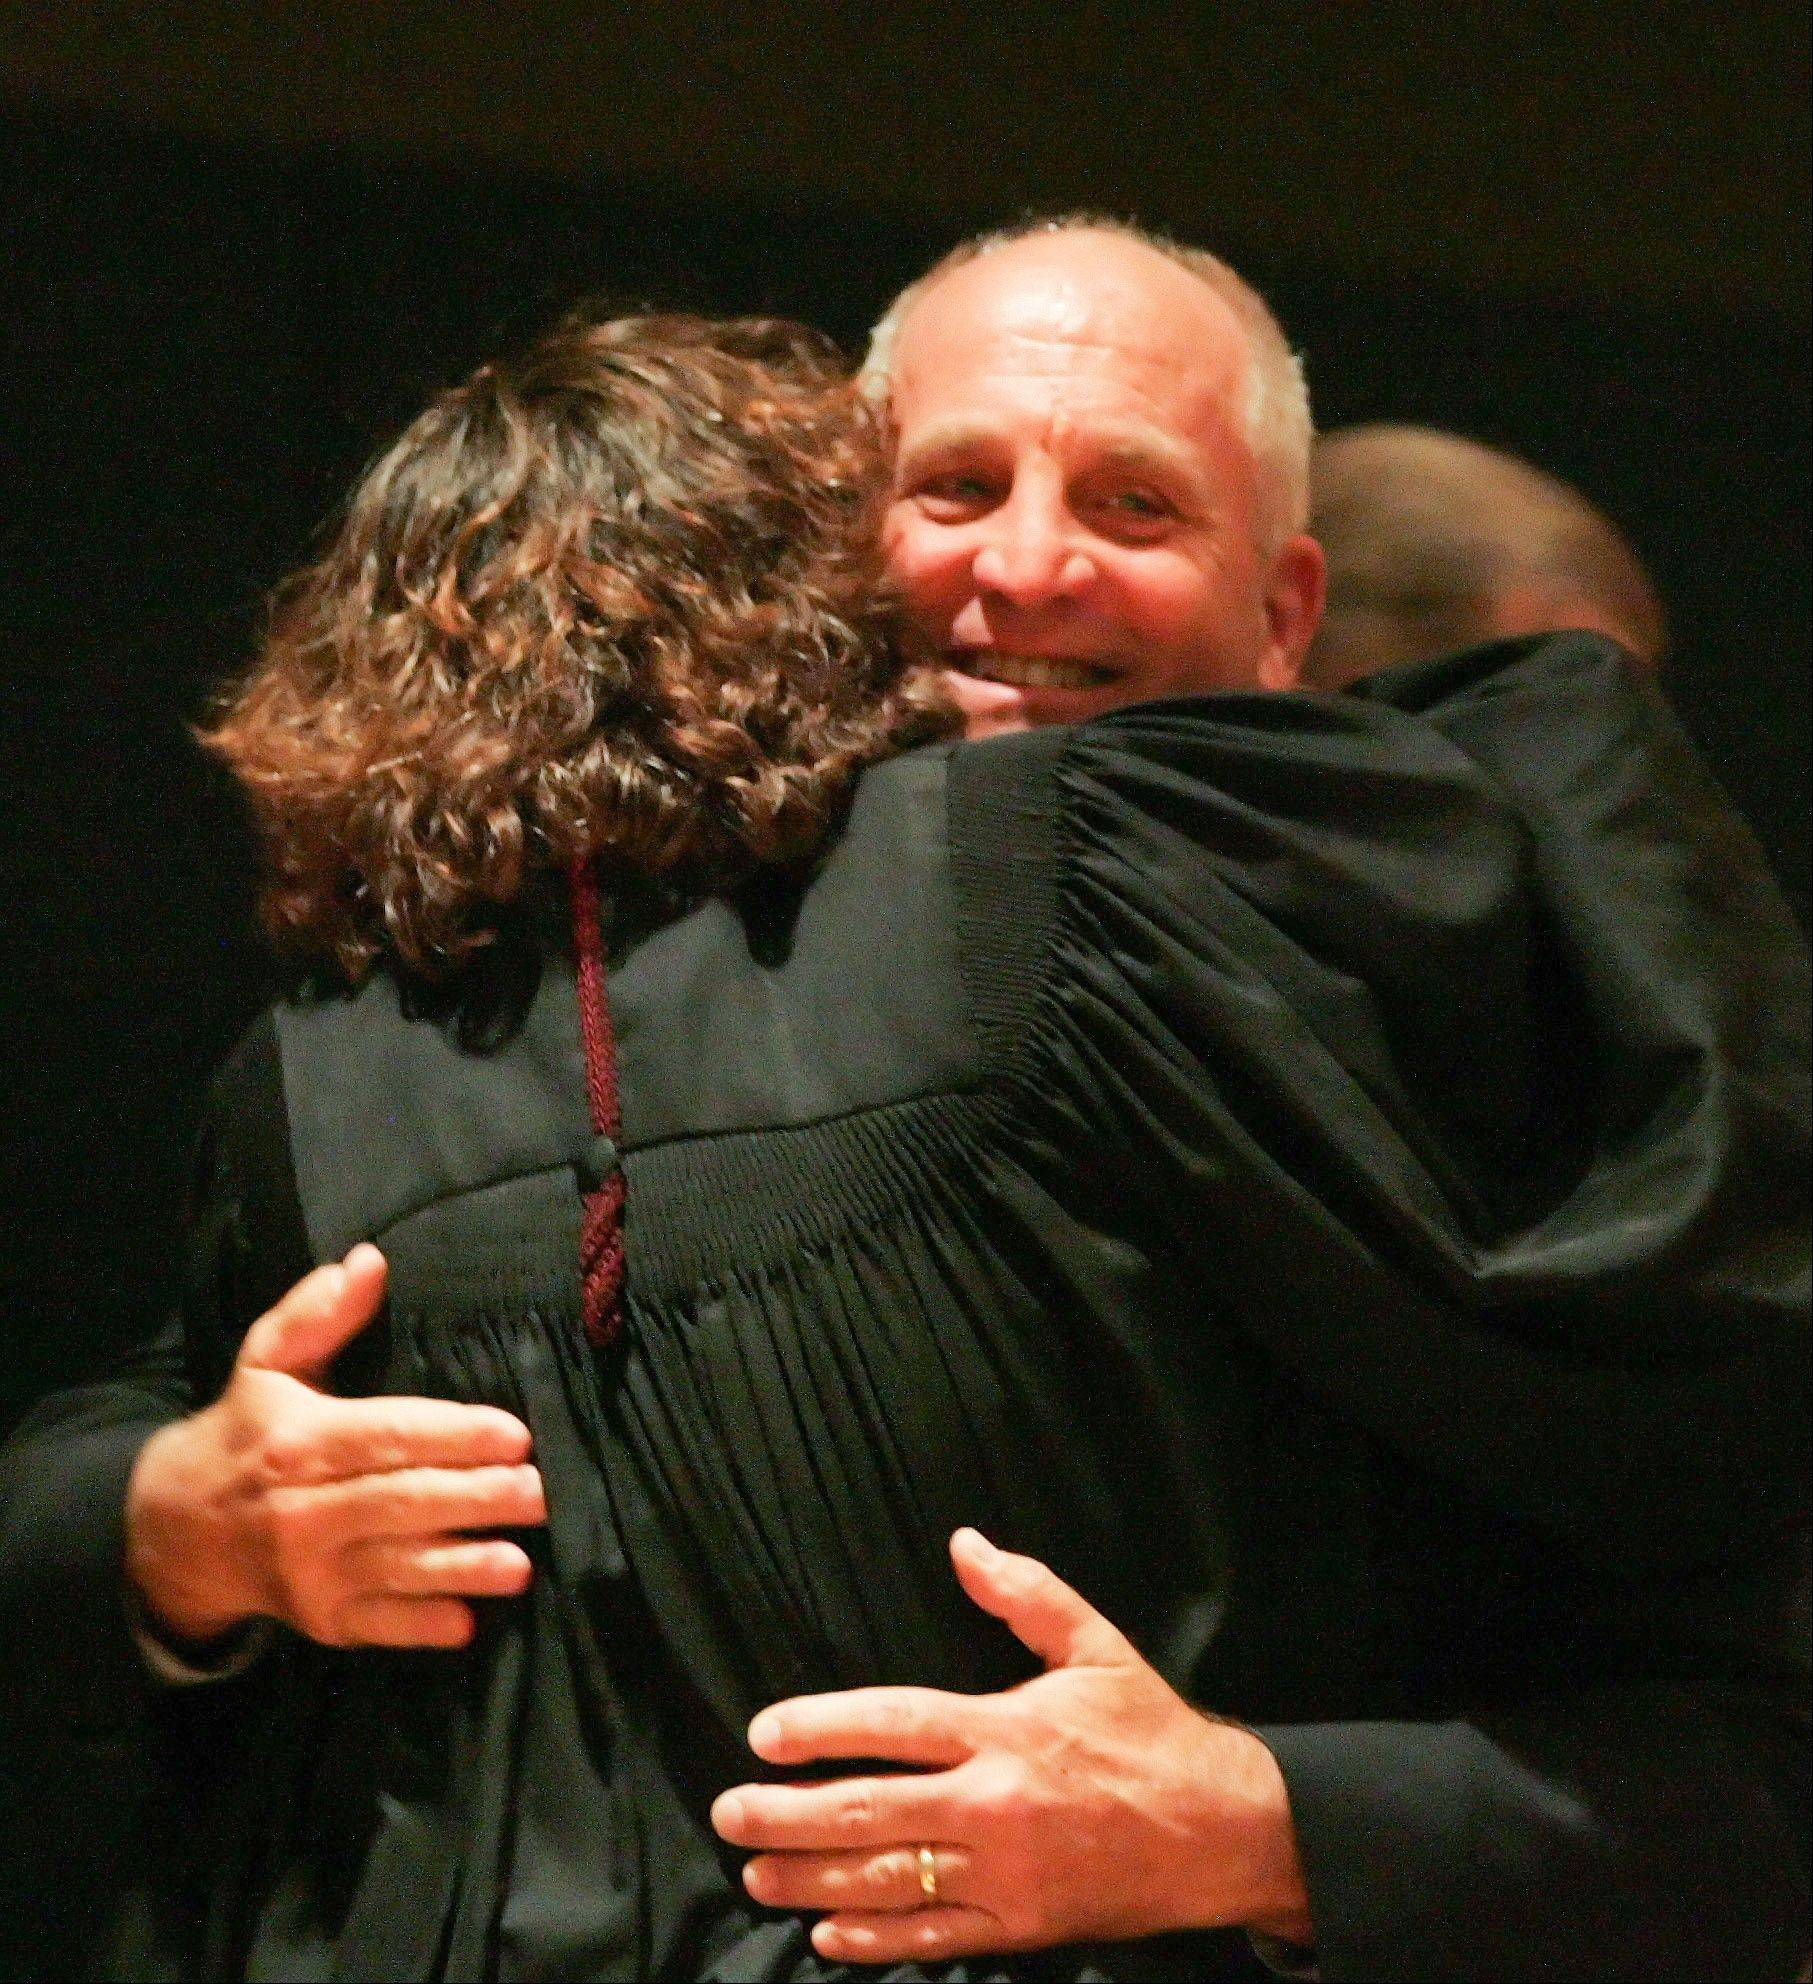 Richard Jorgensen hugs his wife, appellate judge Ann Jorgensen, after she swore him in as coroner at the 2012 Inauguration of DuPage County elected officials at the Jack T. Knuepfer Administration building in Wheaton on Monday.